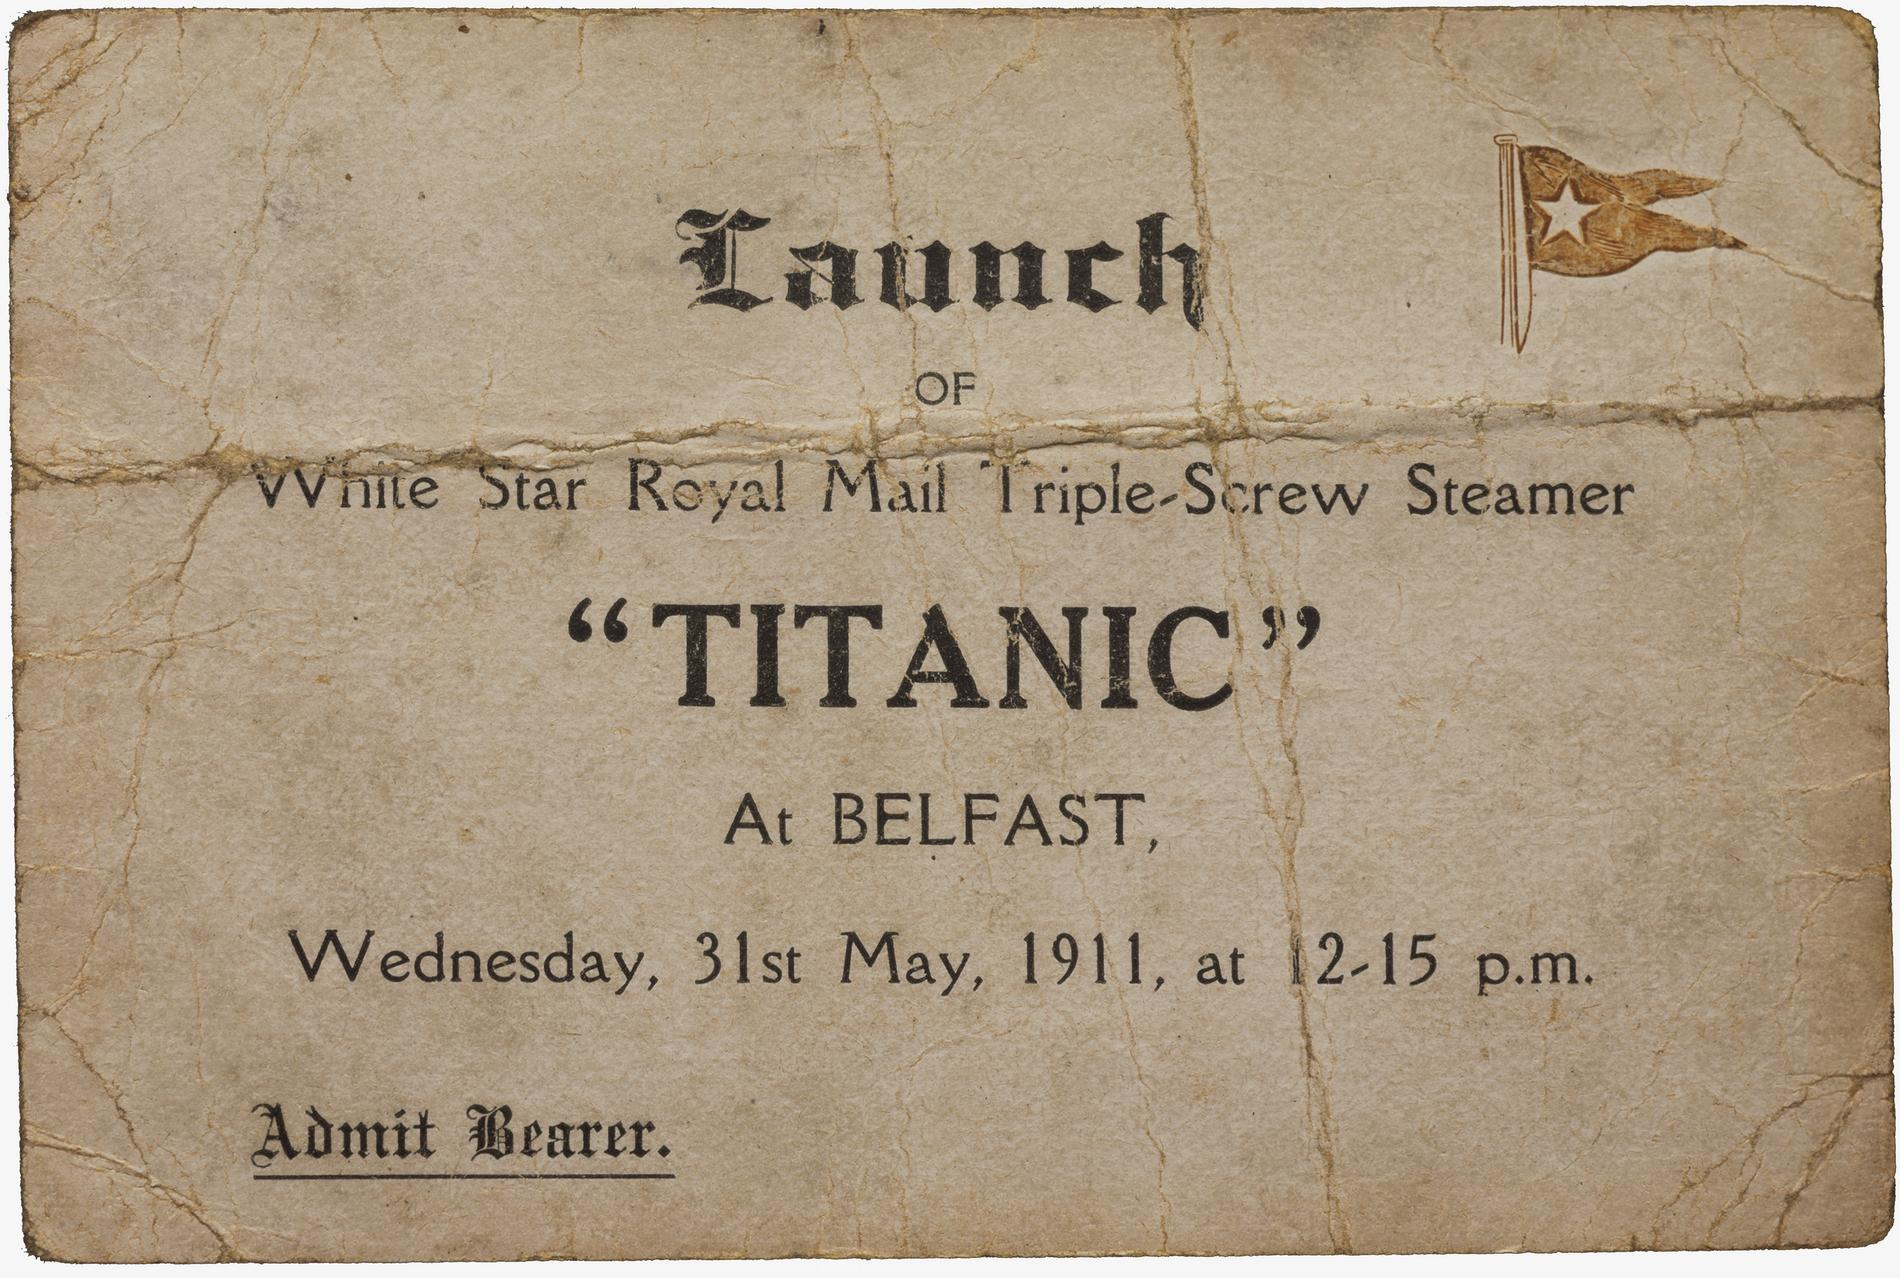 Launch ticket for Titanic